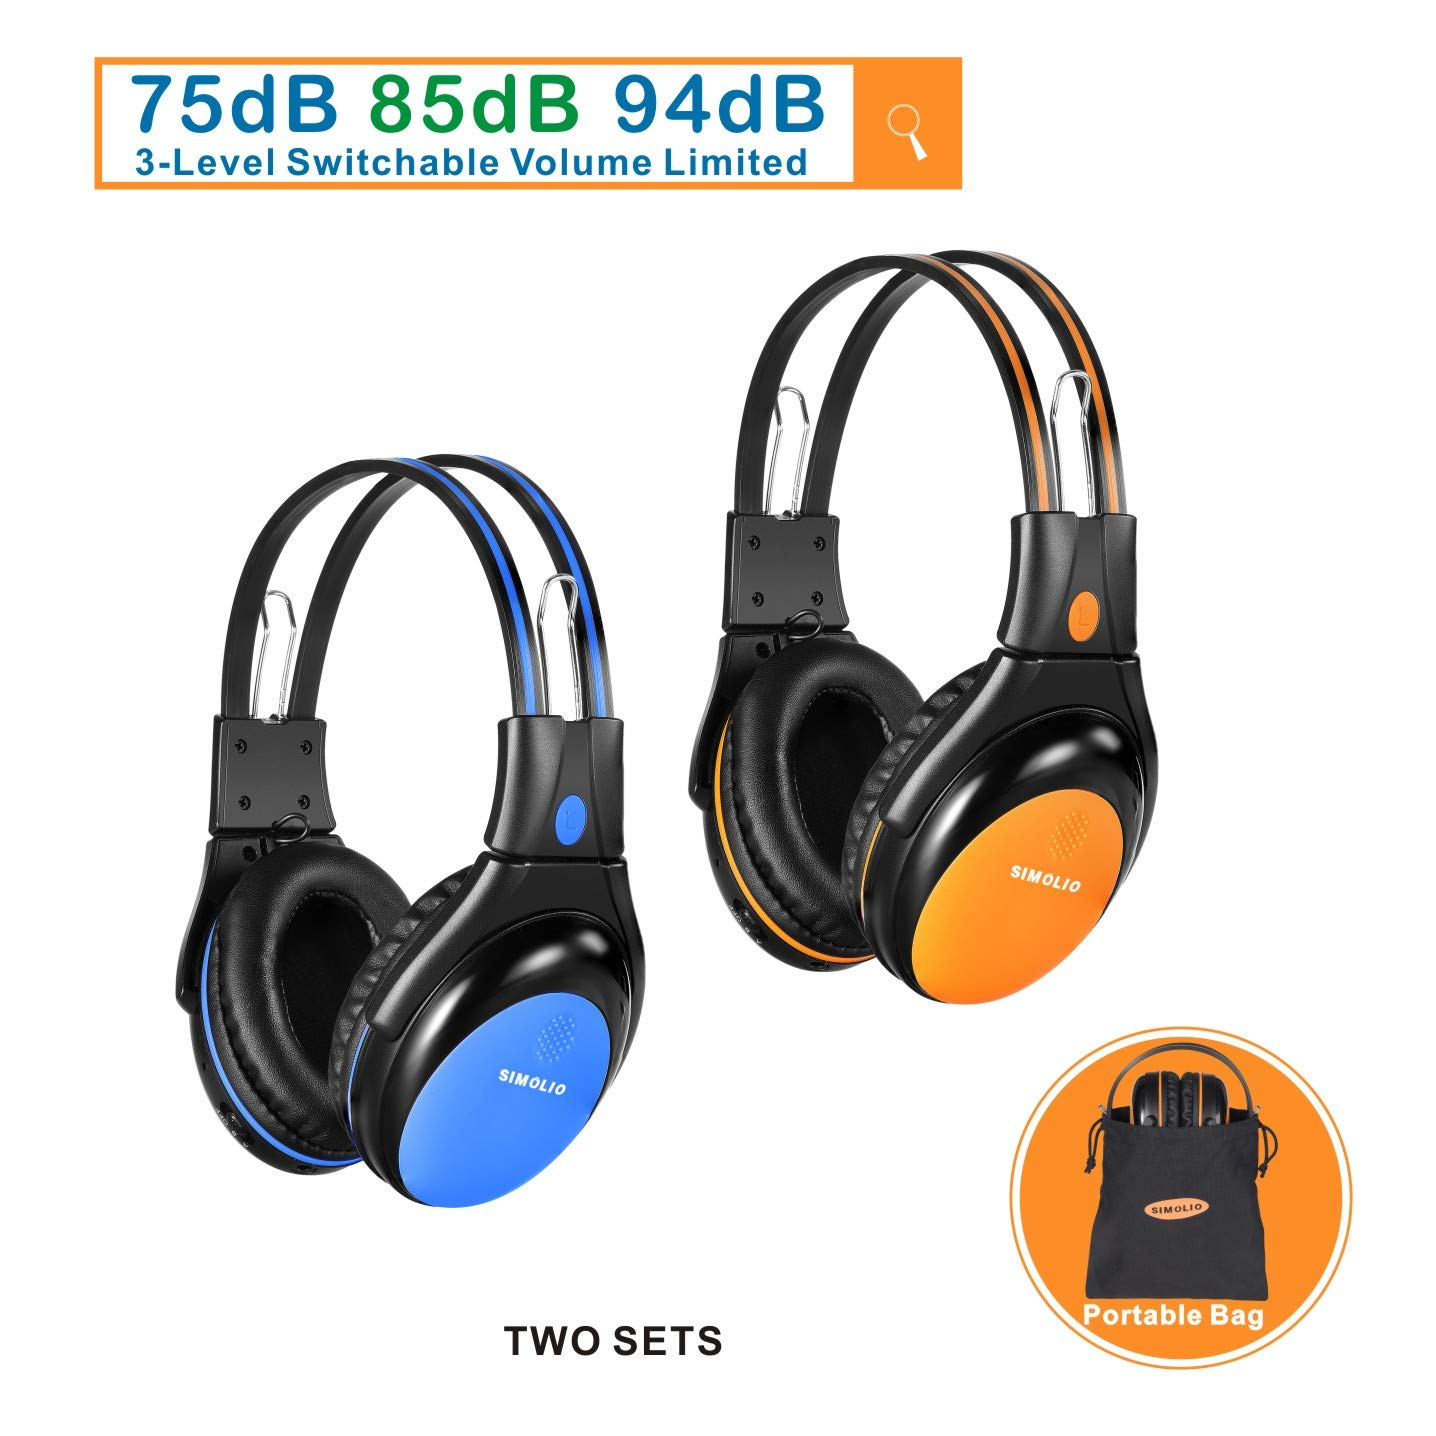 2 Pack of Car Headphones with 3 Levels Volume Limited, Infrared Wireless Headphones for Car DVD/TV, Dual Channel Kids Wireless Headsets for Car DVD Player, Blue and Orange by SIMOLIO